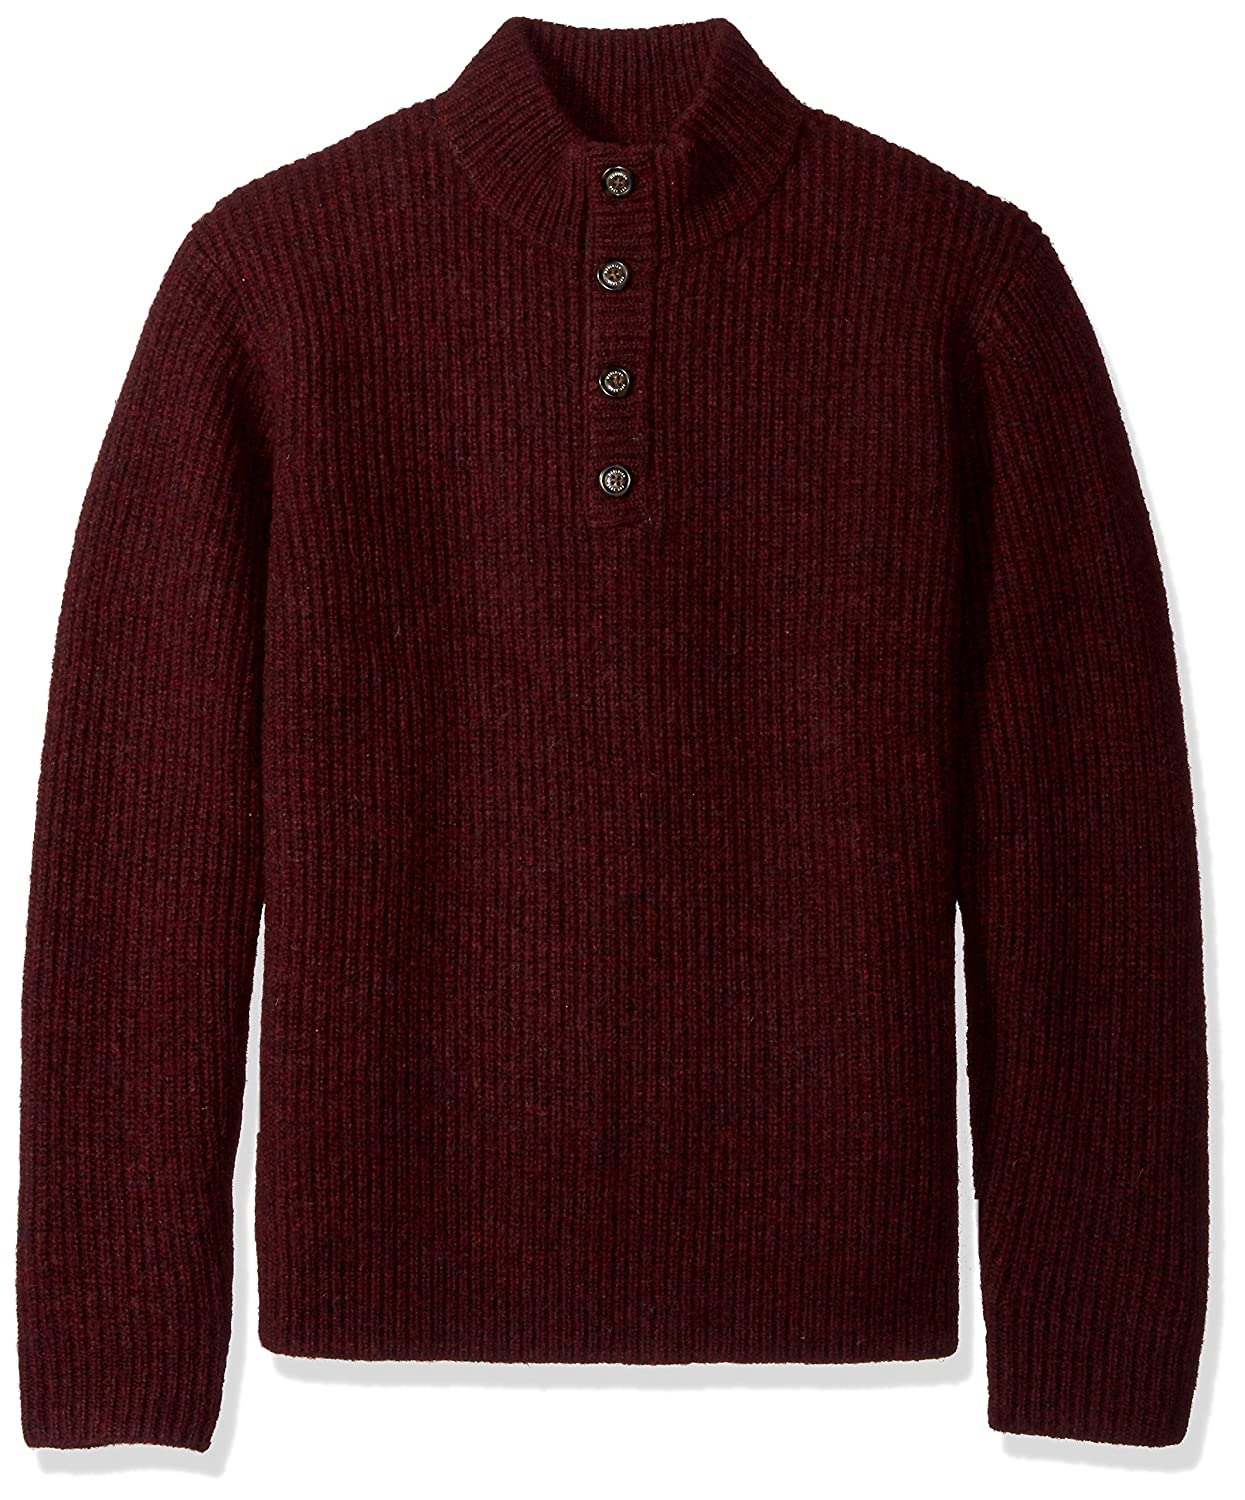 Woolrich Men's the Sweater at Amazon Men's Clothing store: